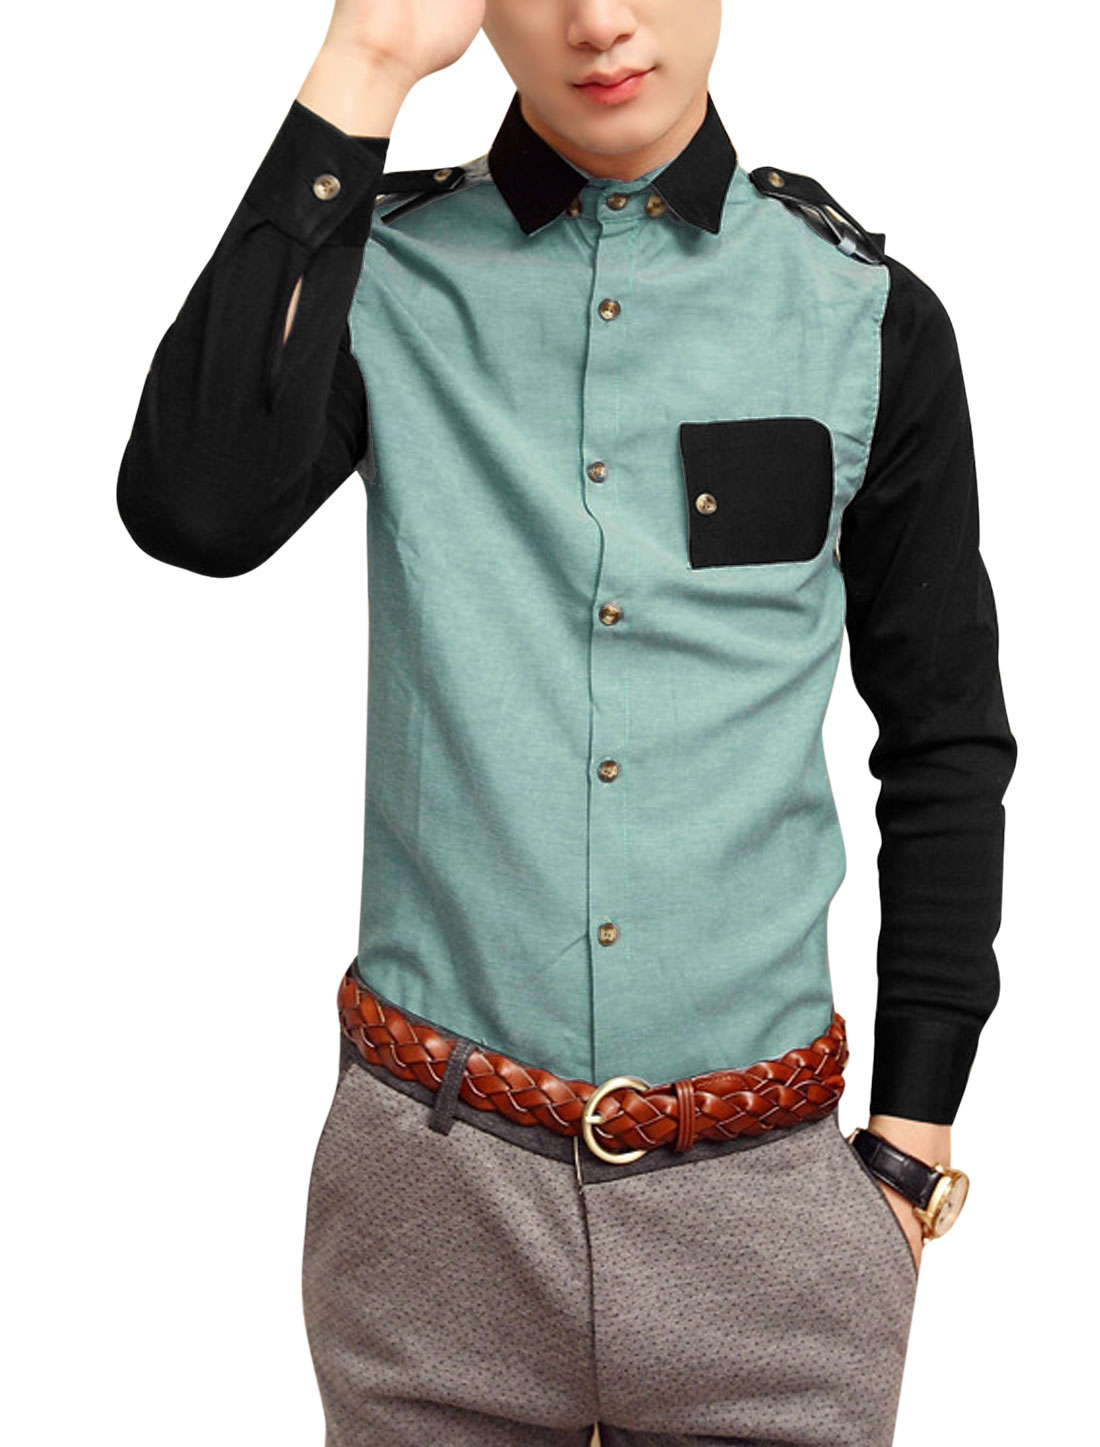 Men Point Collar Button-Front Epaulette Decor Shirt Sea Green M